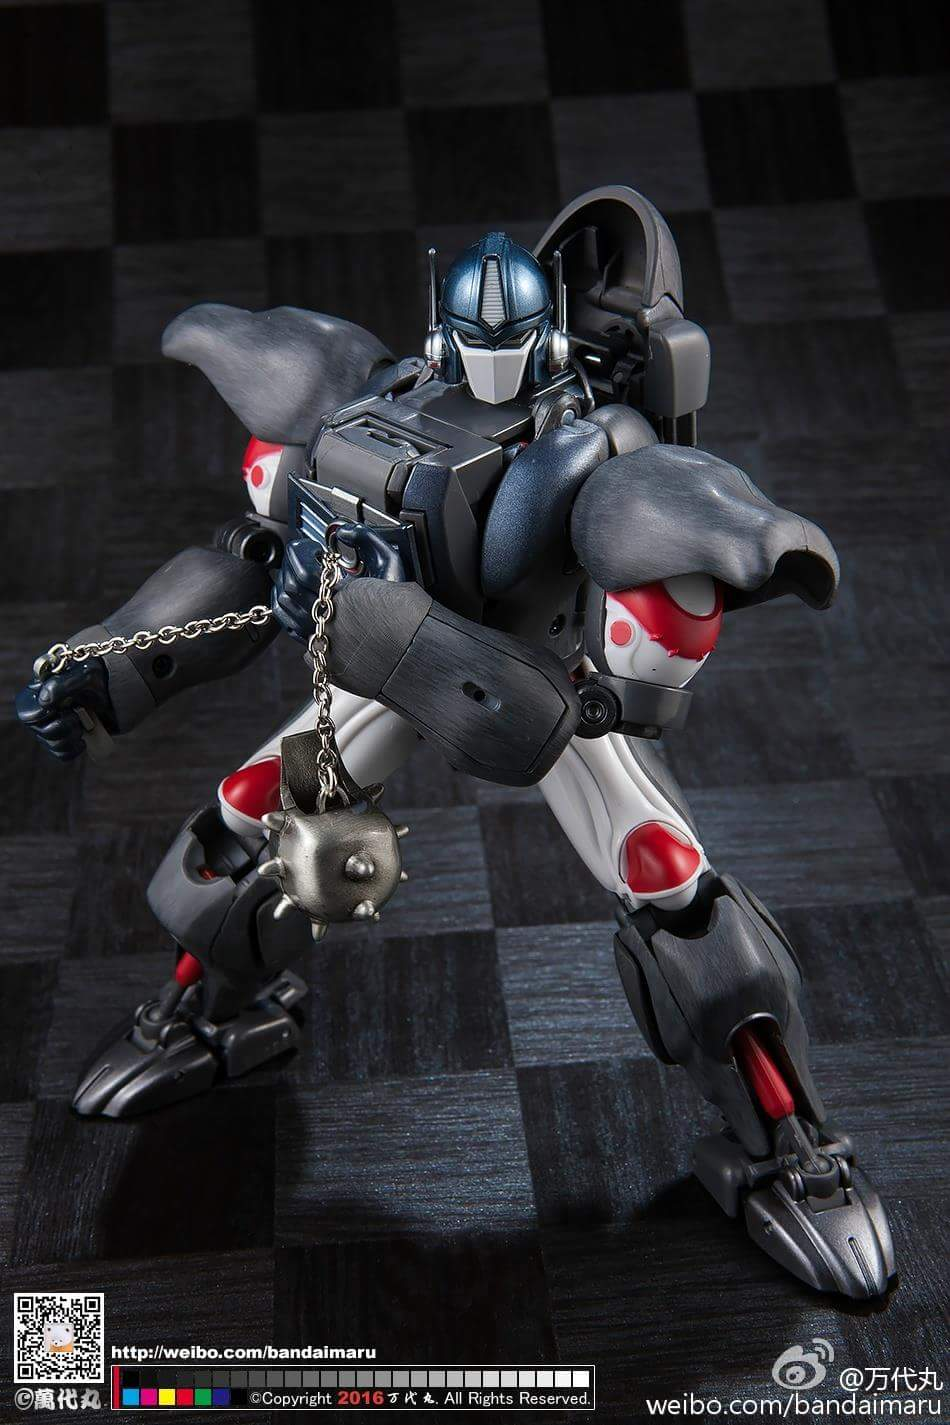 [Masterpiece] MP-32, MP-38 Optimus Primal et MP-38+ Burning Convoy (Beast Wars) - Page 4 VIb1ylA0